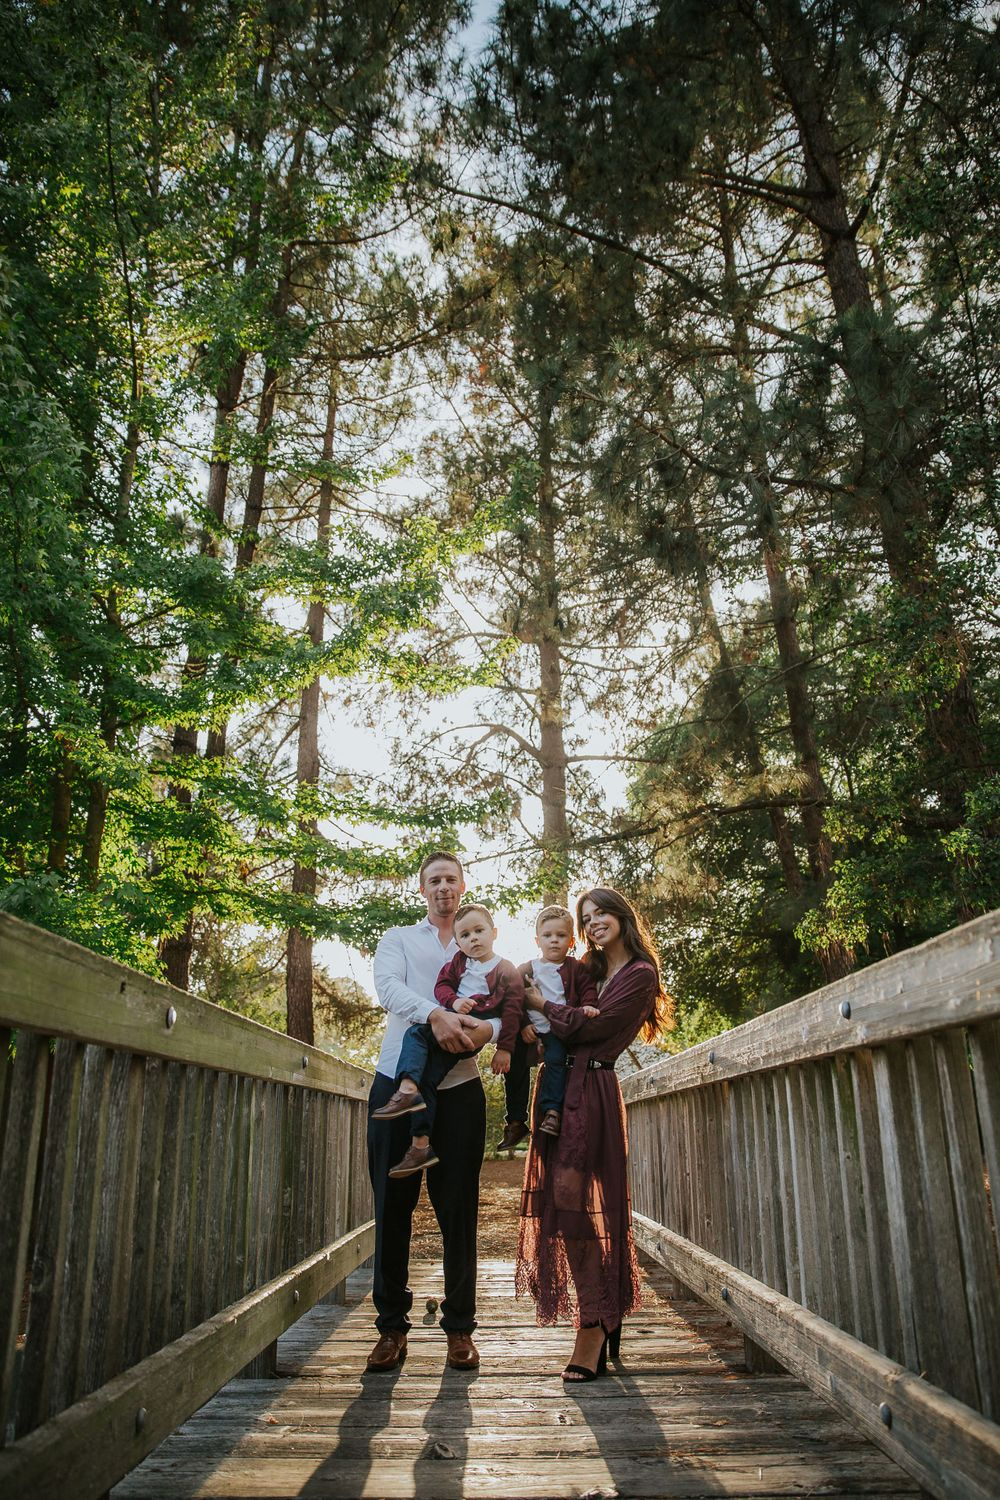 rebecca skidgel photography wedding photographer adventure 2020 highs lows proposal napa covid19 backyard august